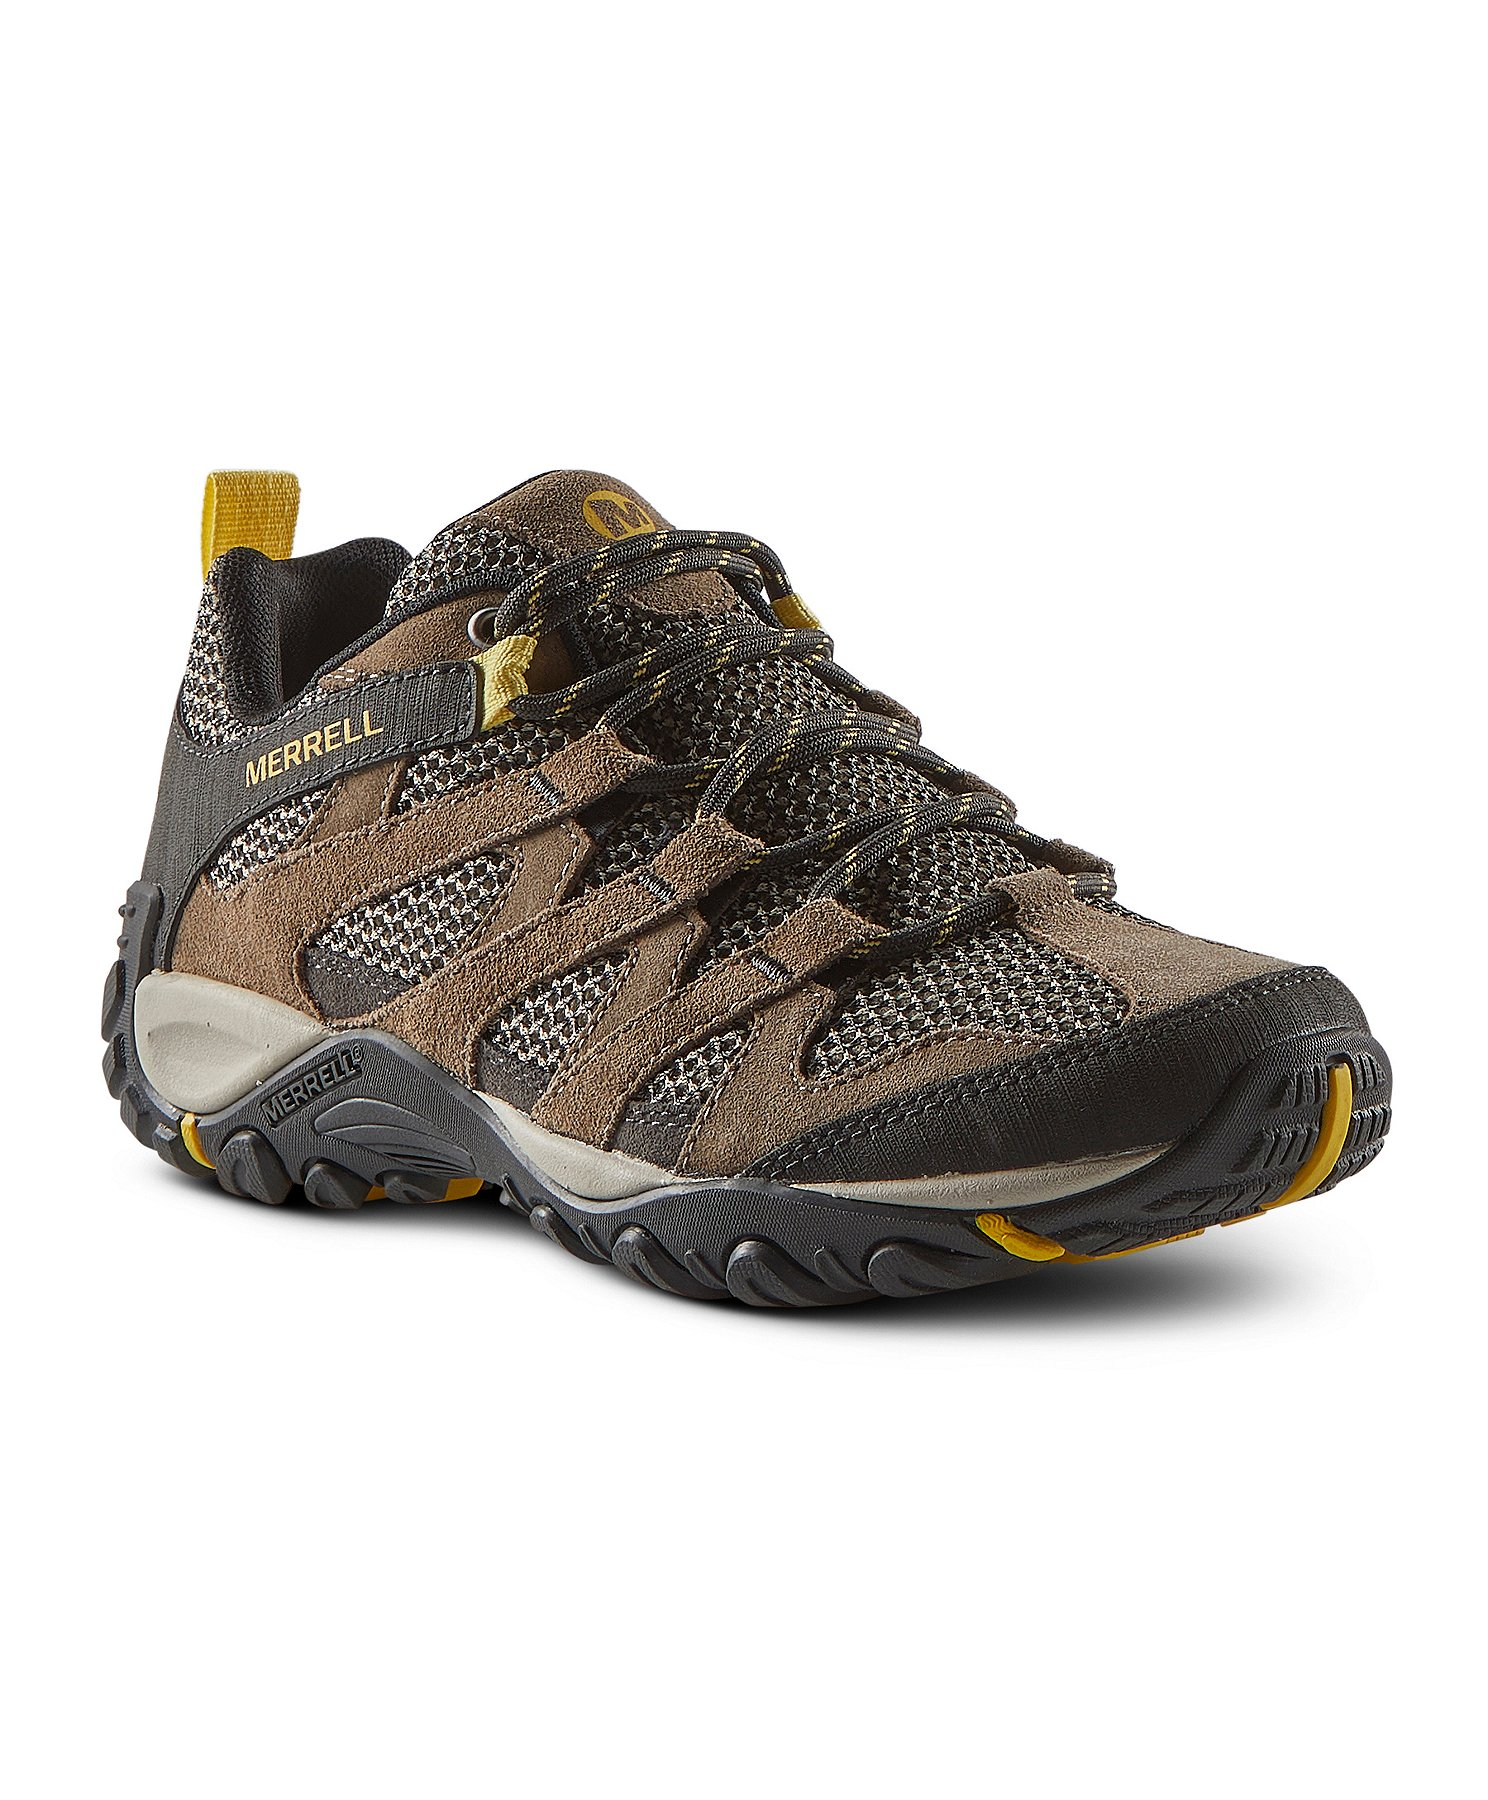 49245dc3 Women's Alverstone Vent Hiking Shoes